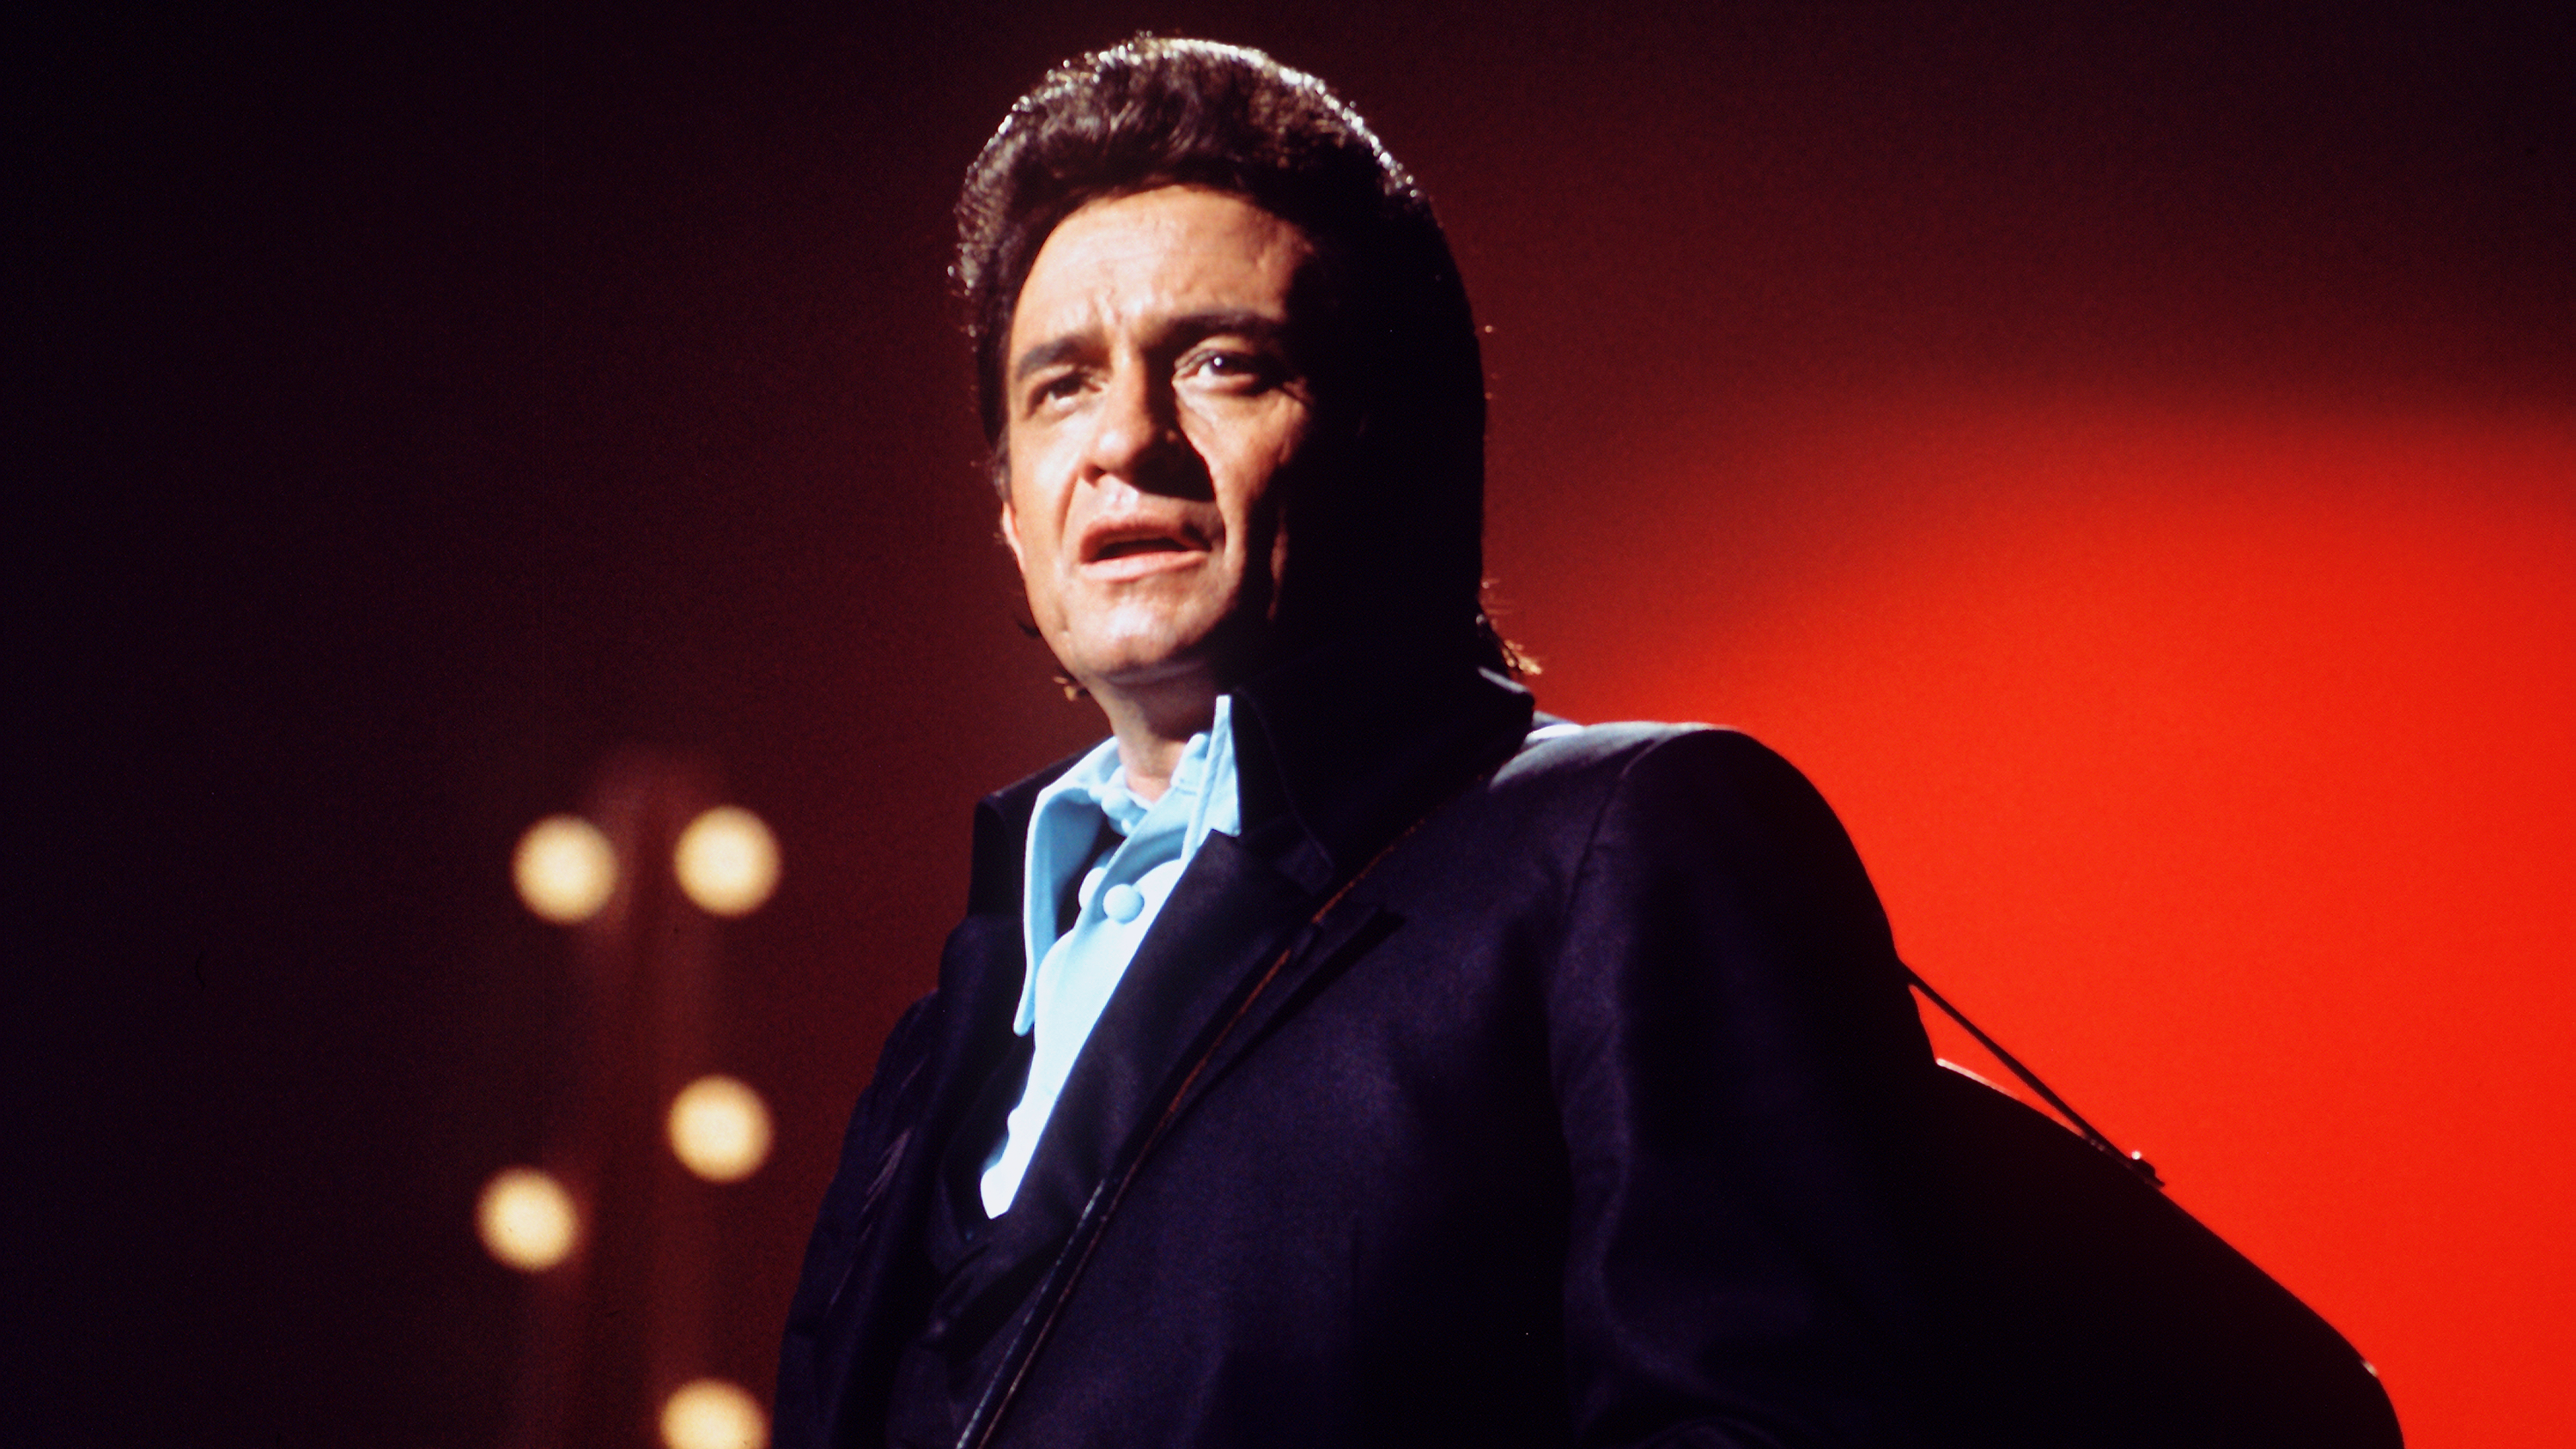 johnny_cash_show_question_1_16-9